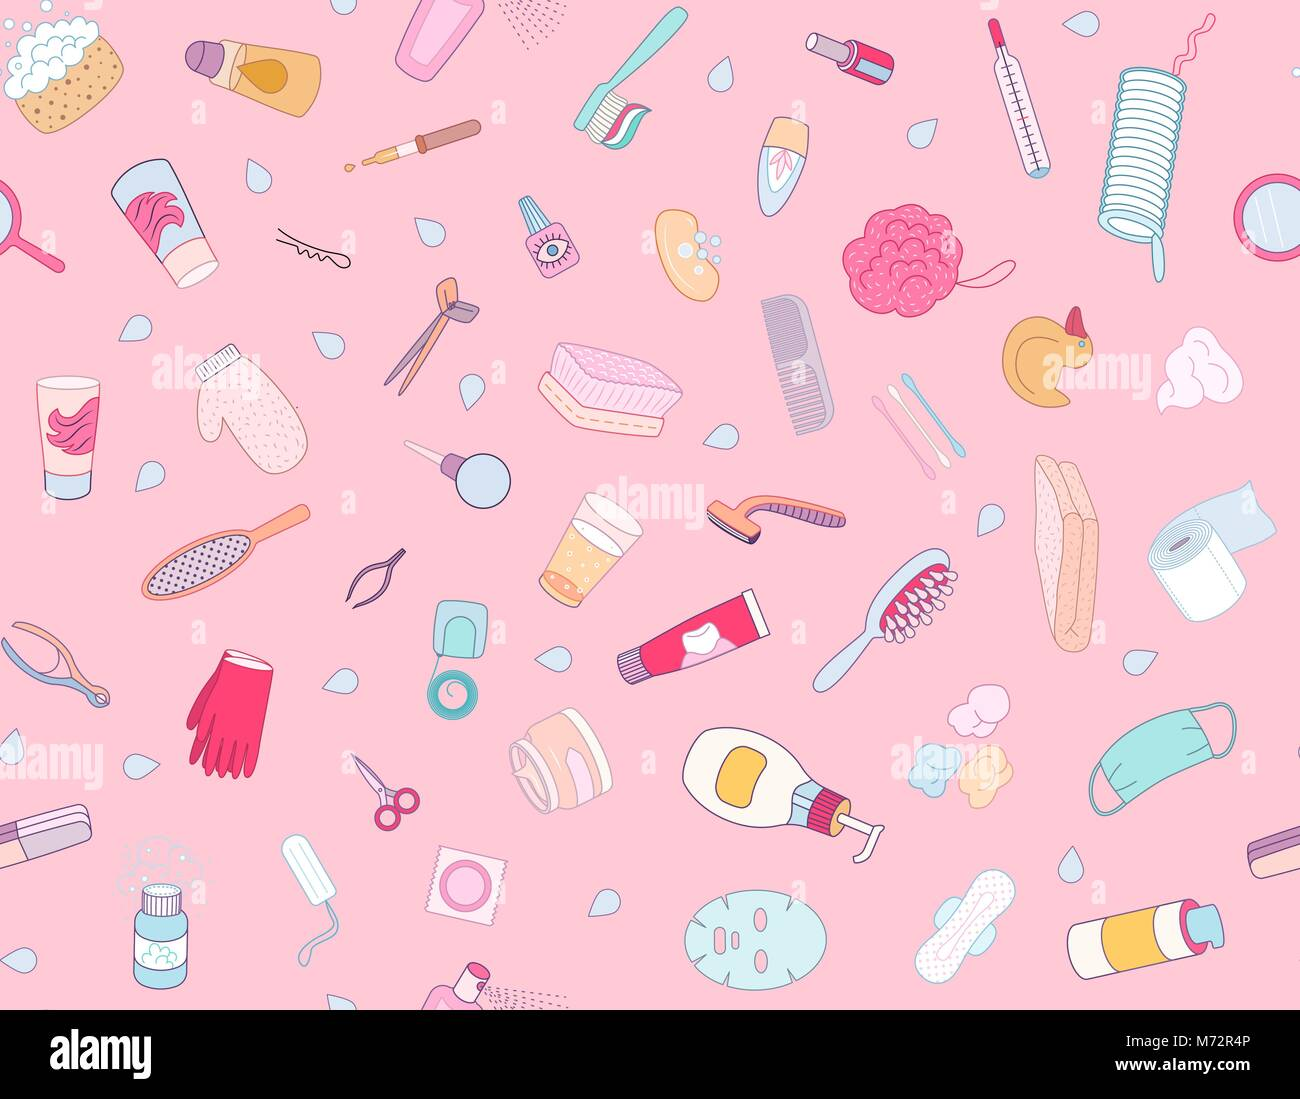 Hygiene elements seamless pattern on pink background, flat cartoon vector illustration - Stock Vector